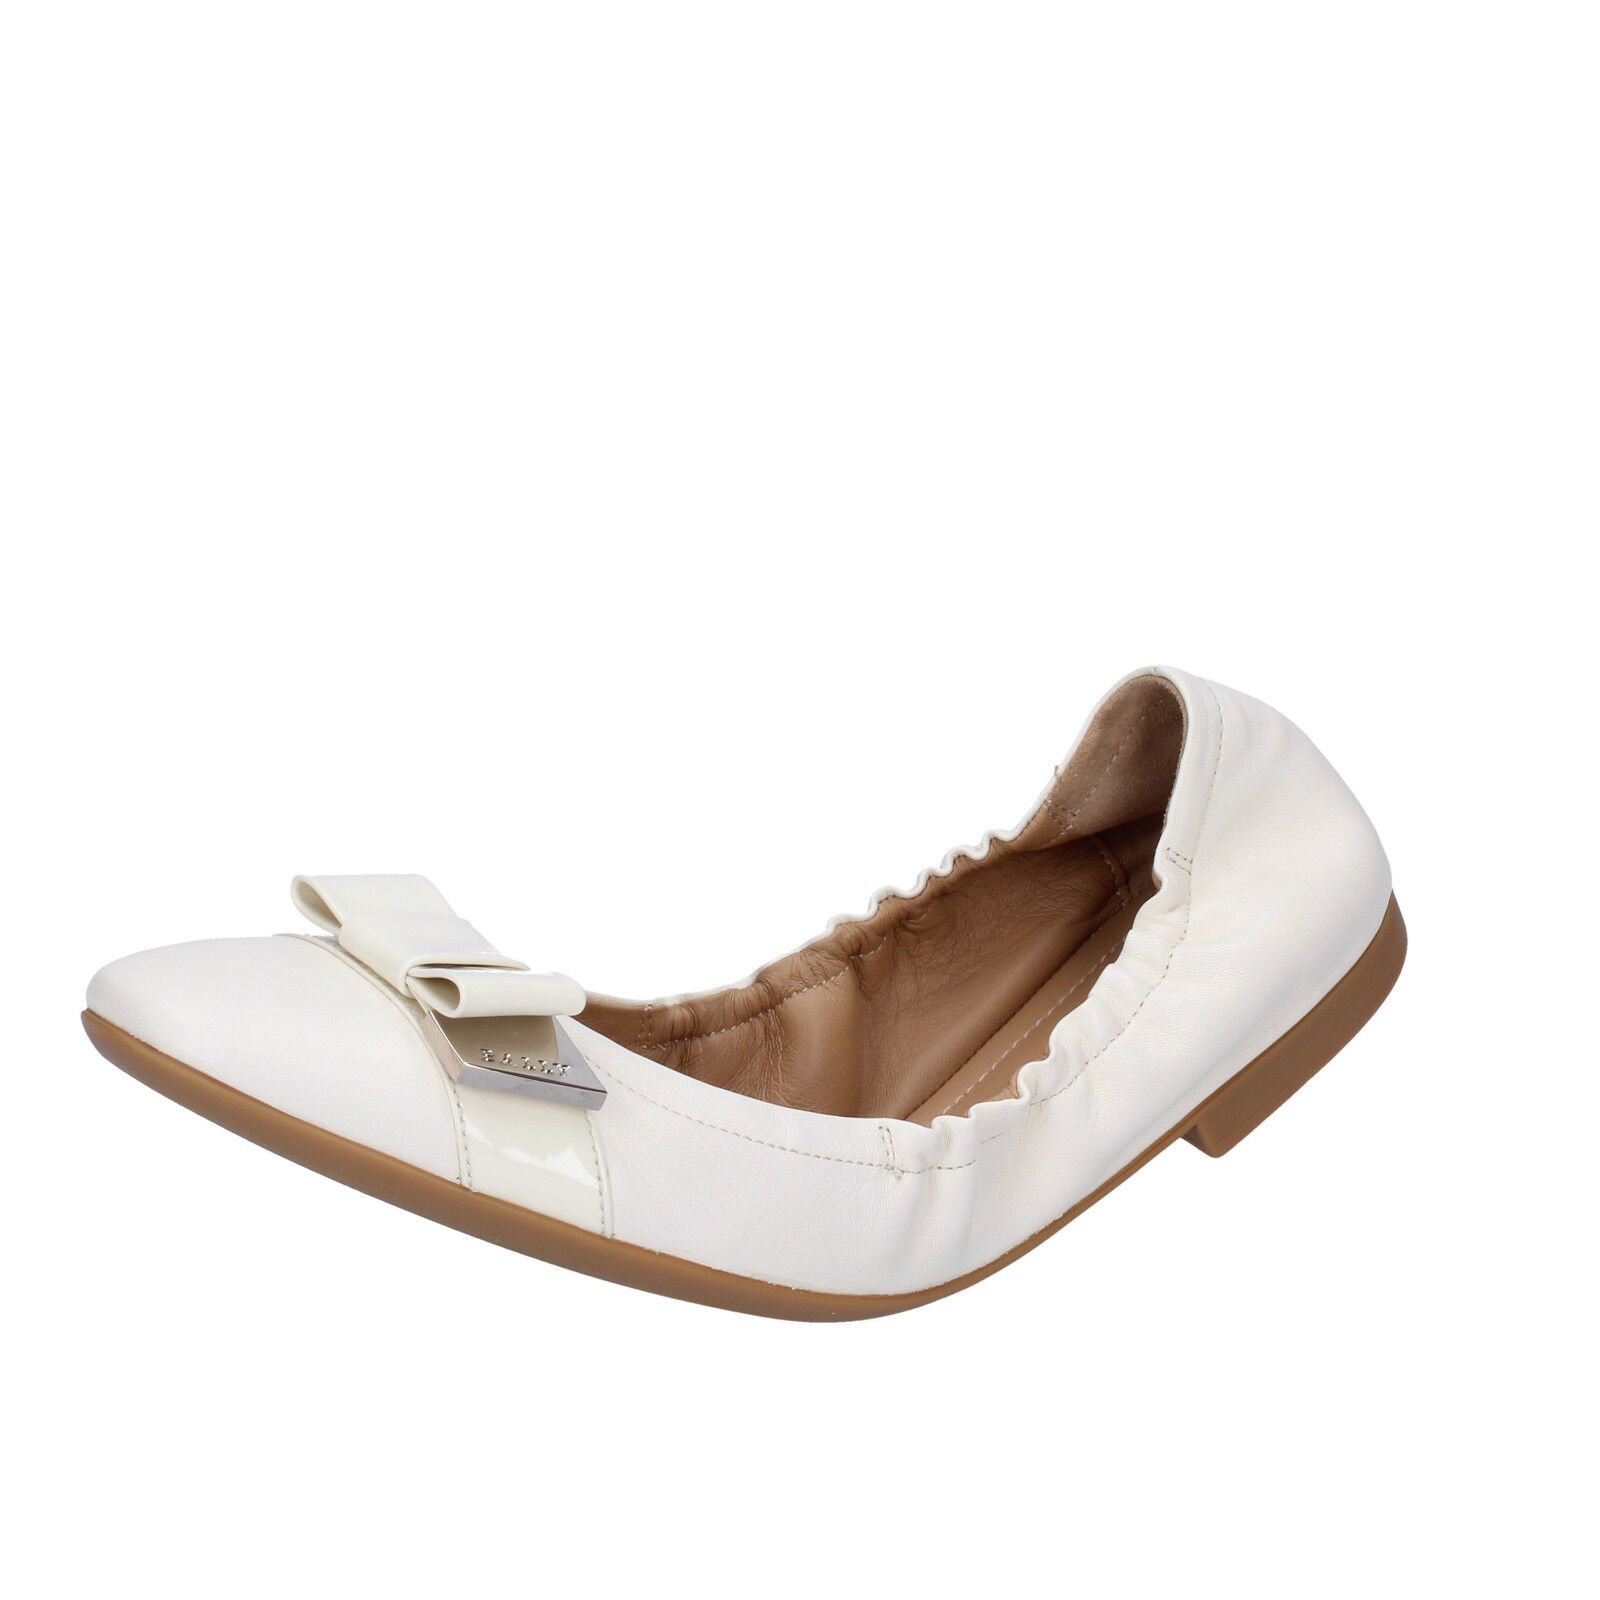 damen schuhe BALLY 3,5 (EU 36,5) flats Weiß leather BY39-B